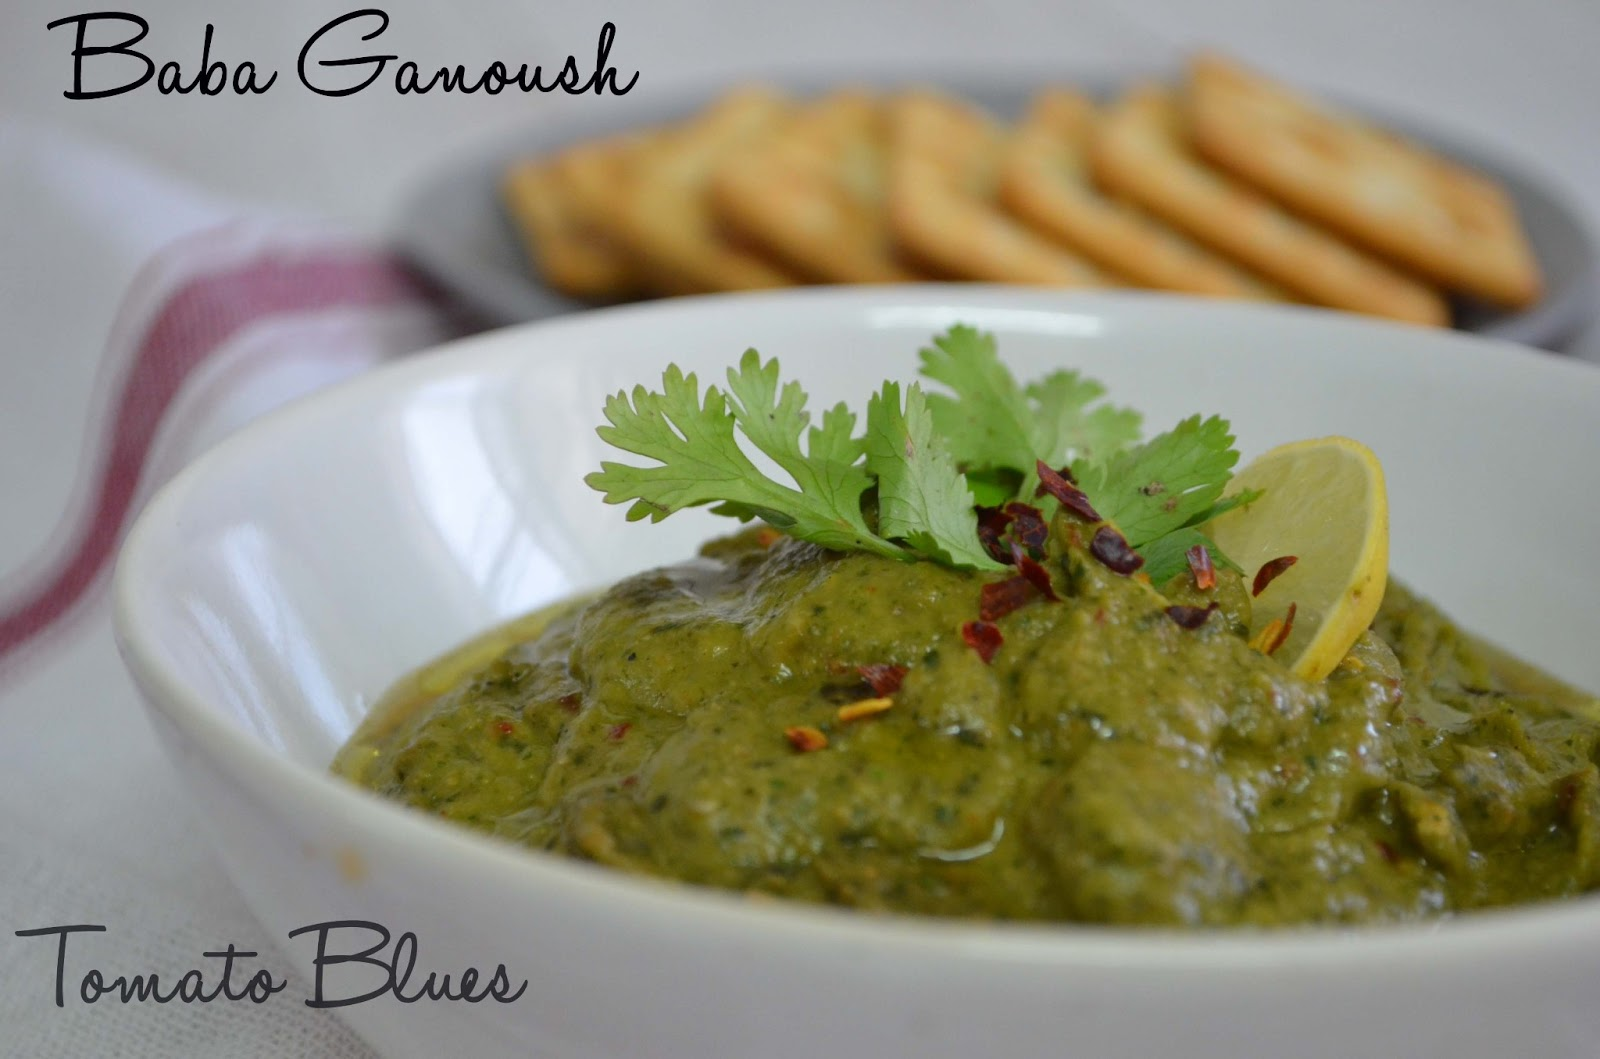 Baba Ganoush Recipe | Easy Dips And Spreads Recipe - Tomato Blues